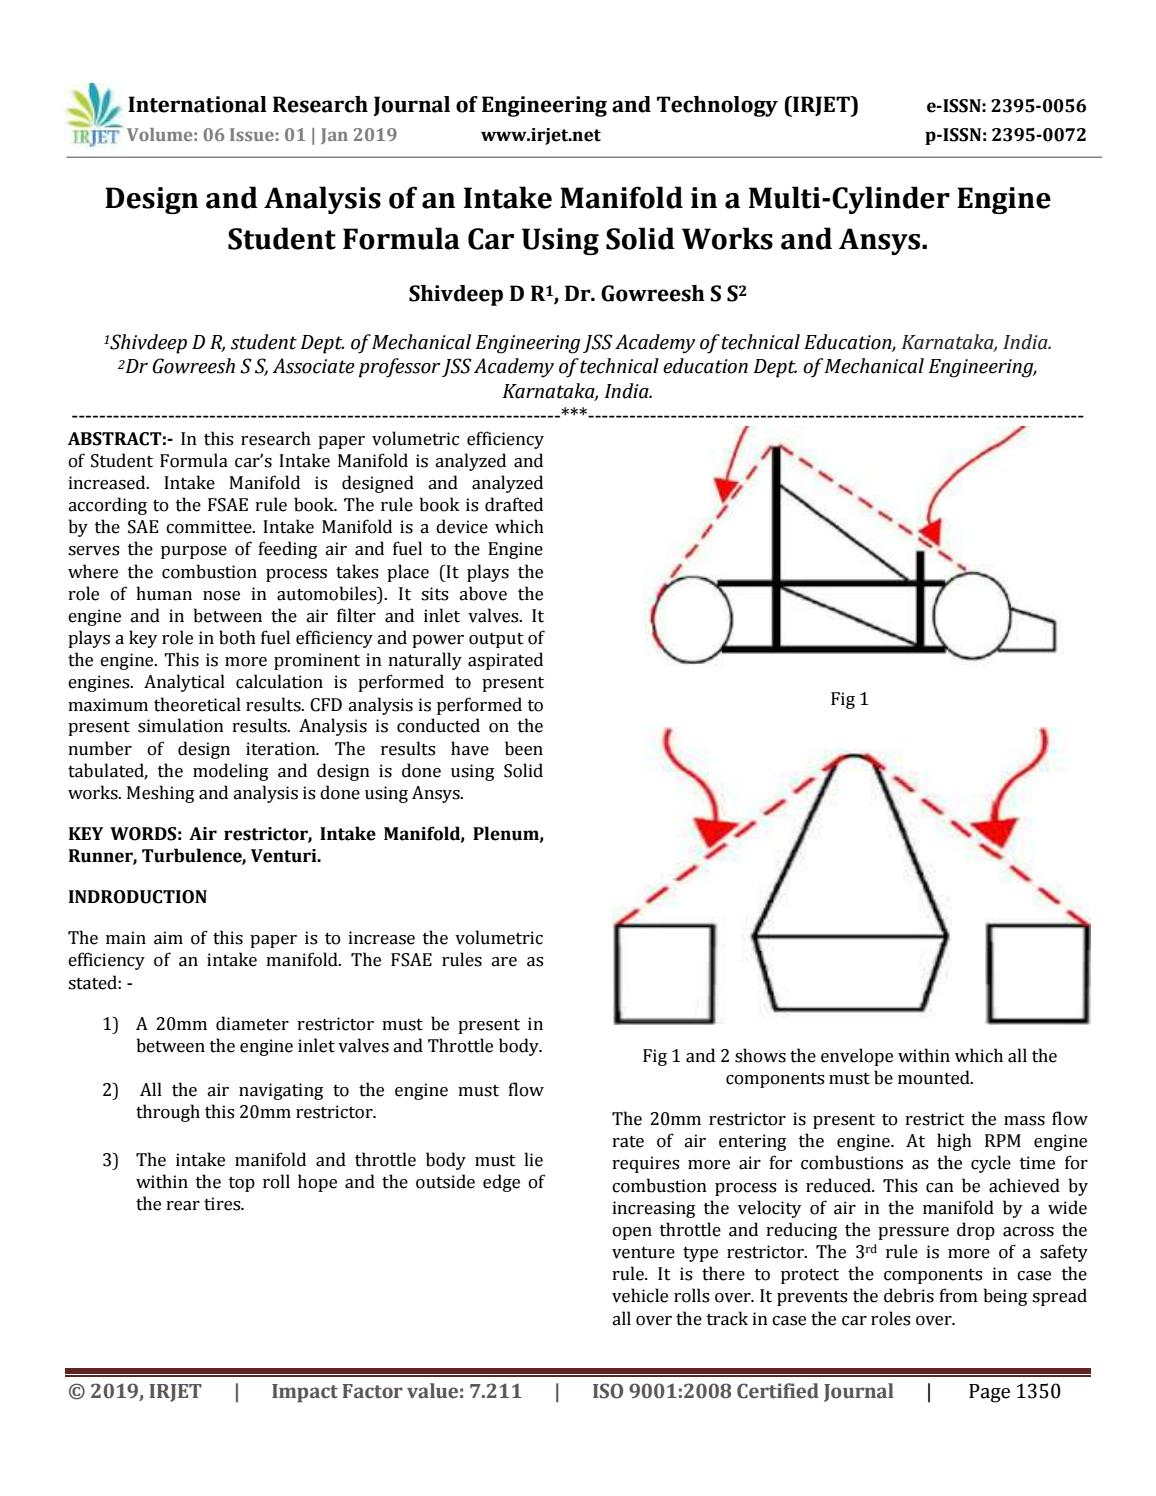 hight resolution of irjet design and analysis of an intake manifold in a multi cylinder engine student formula car usin by irjet journal issuu